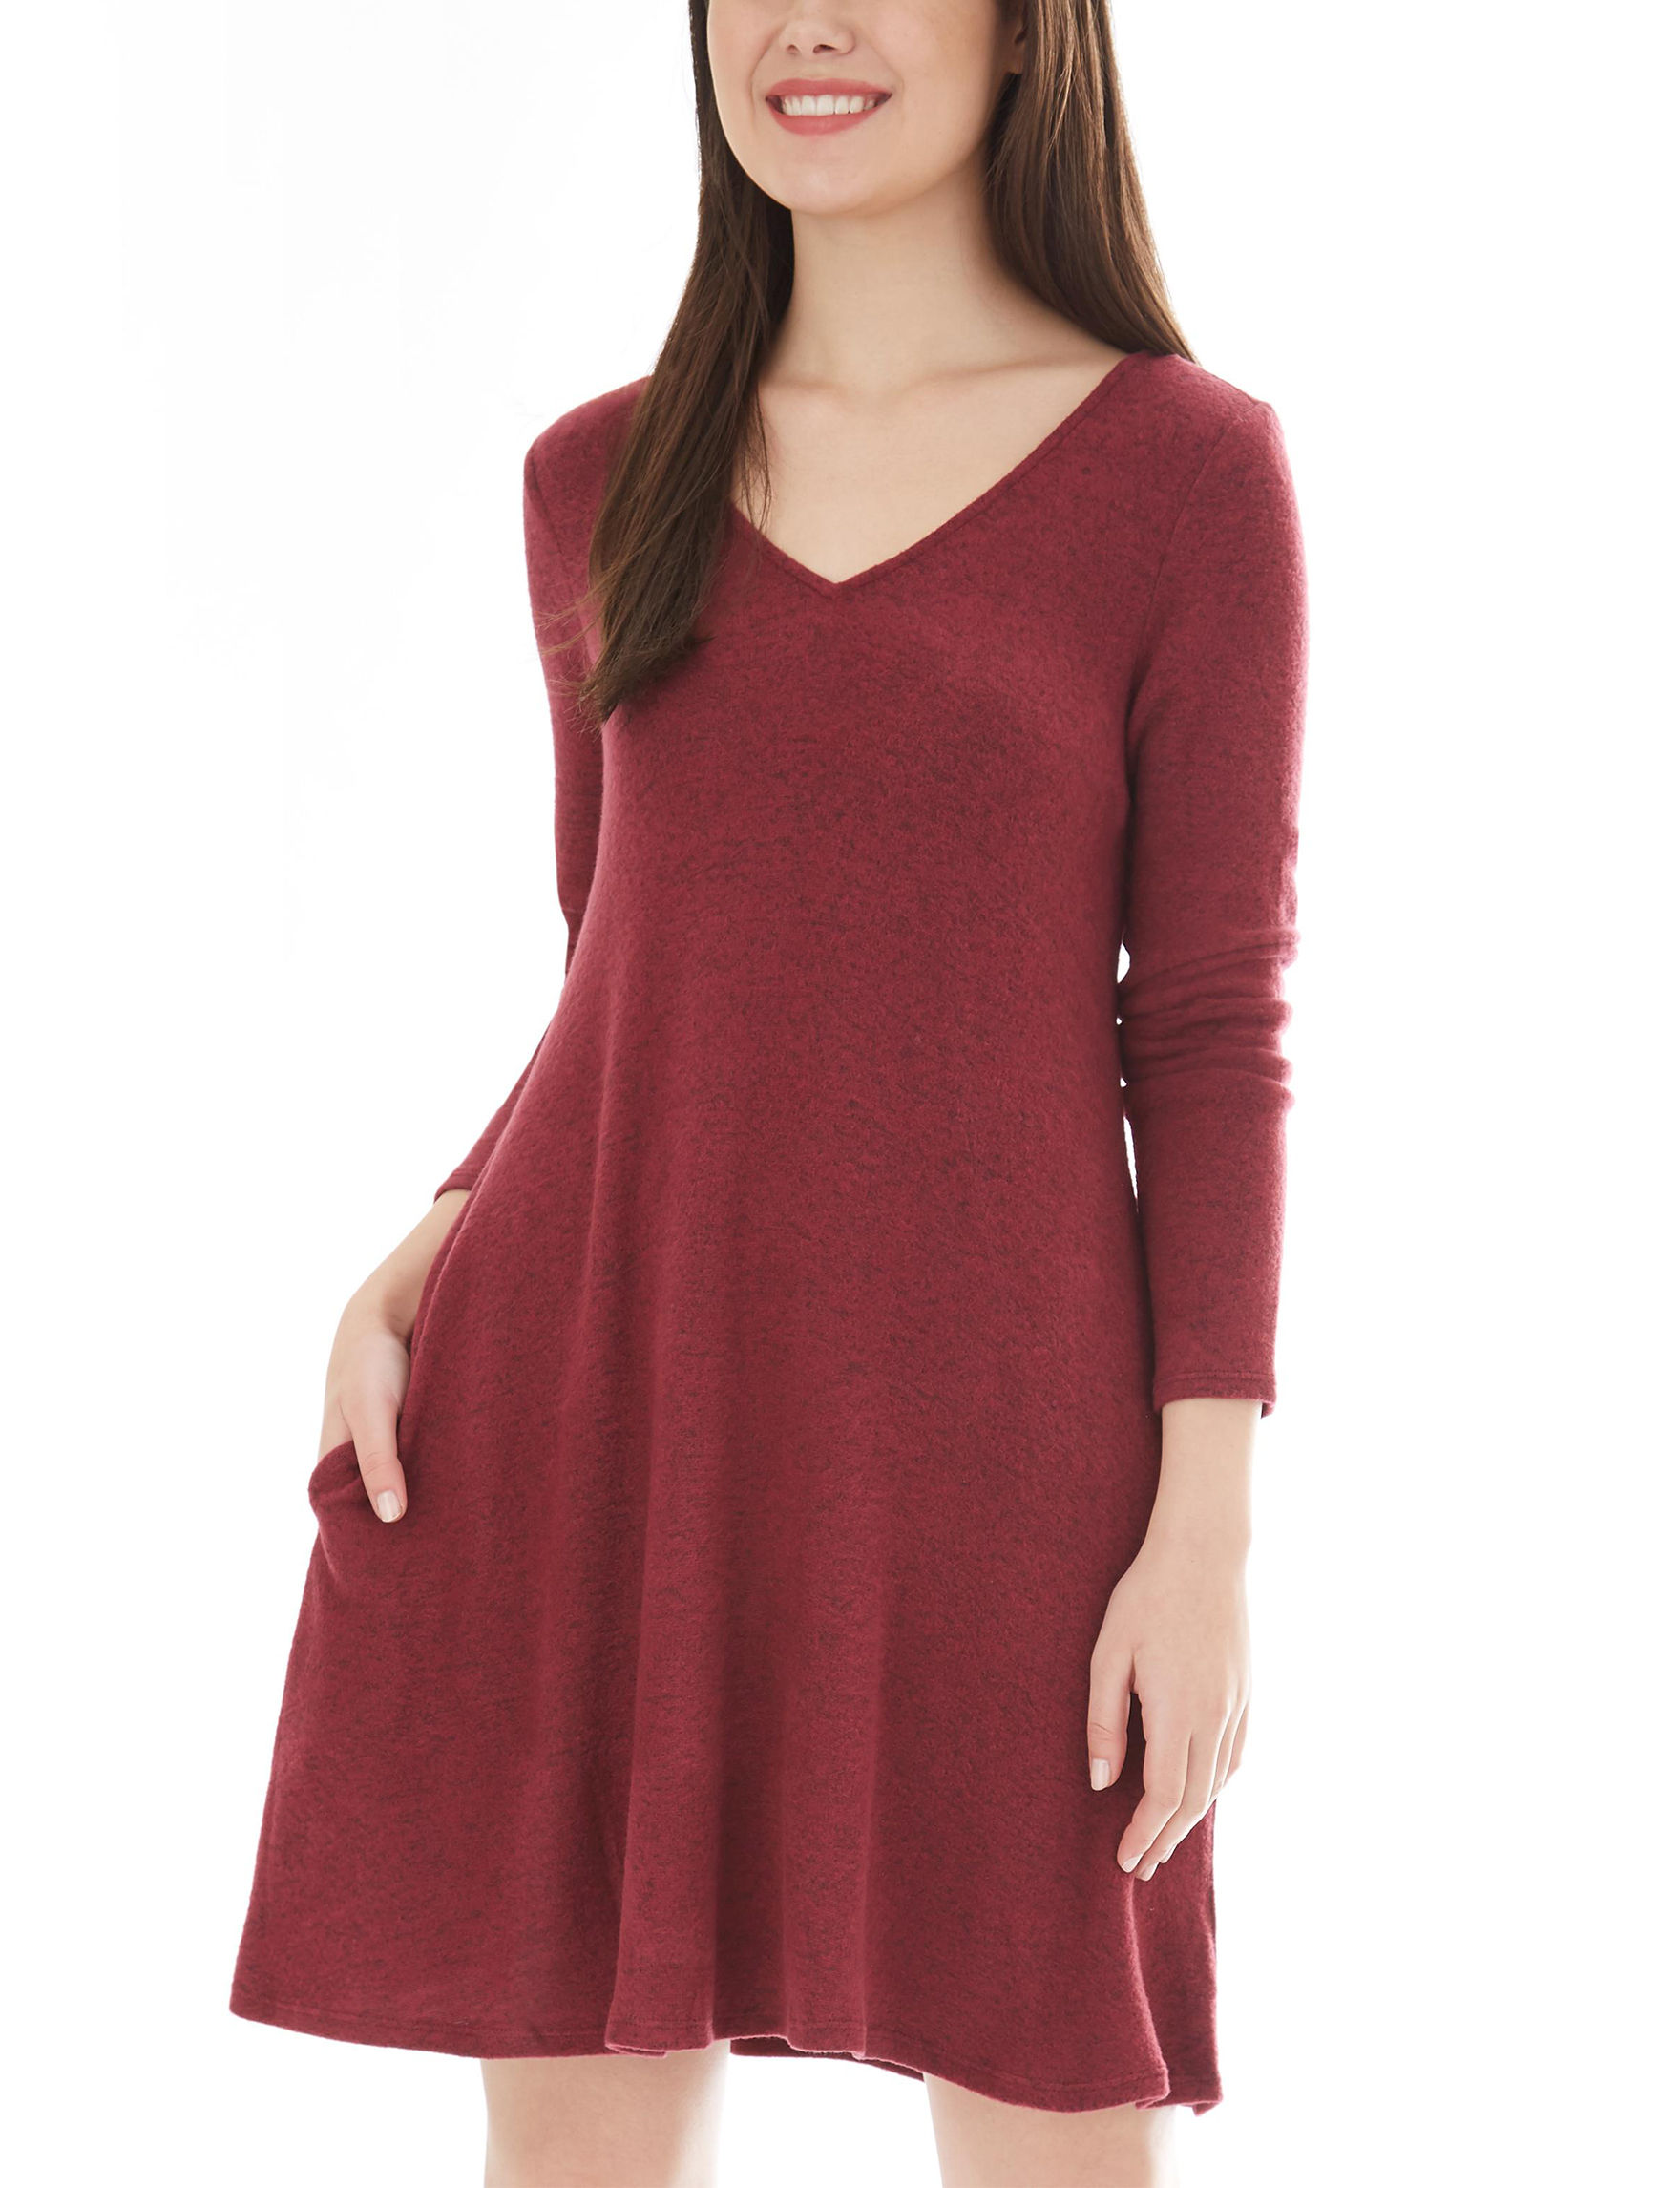 A. Byer Burgandy Everyday & Casual Sweater Dresses